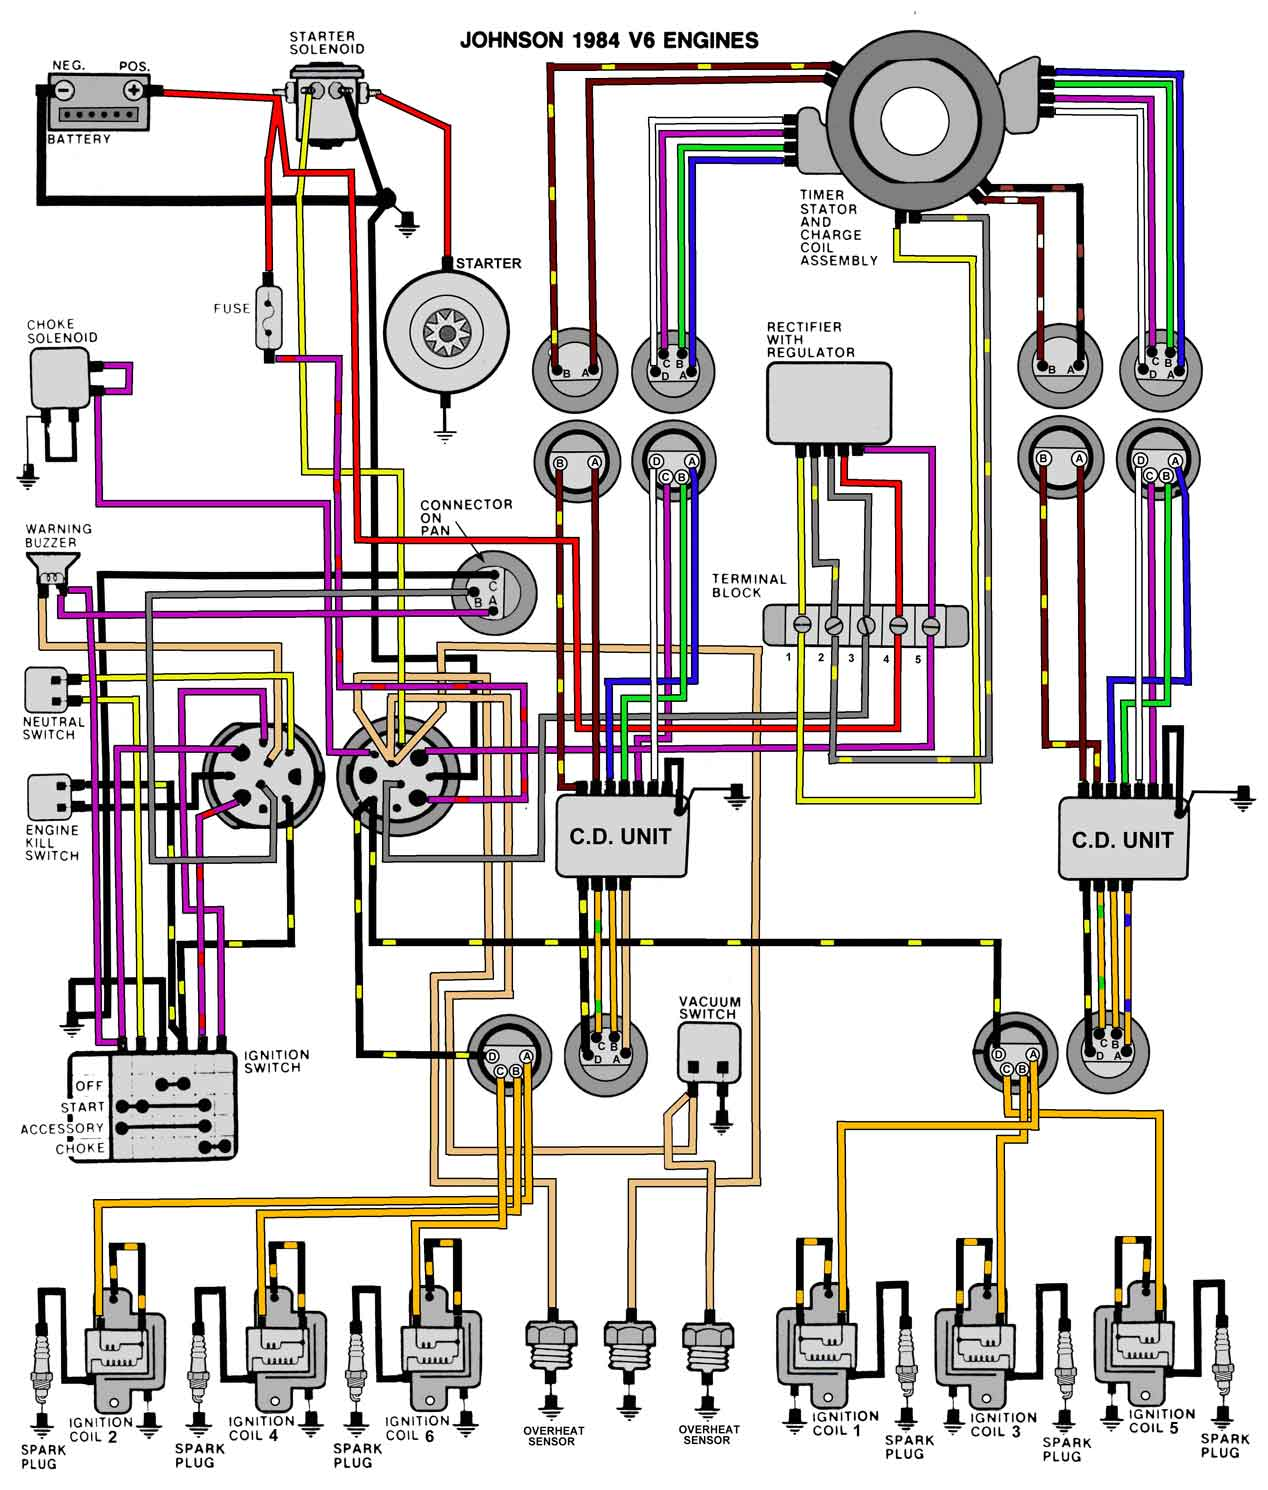 84_V6 boat motor wiring diagram small boat wiring diagram \u2022 wiring Boat Ignition Switch Wiring Diagram at creativeand.co